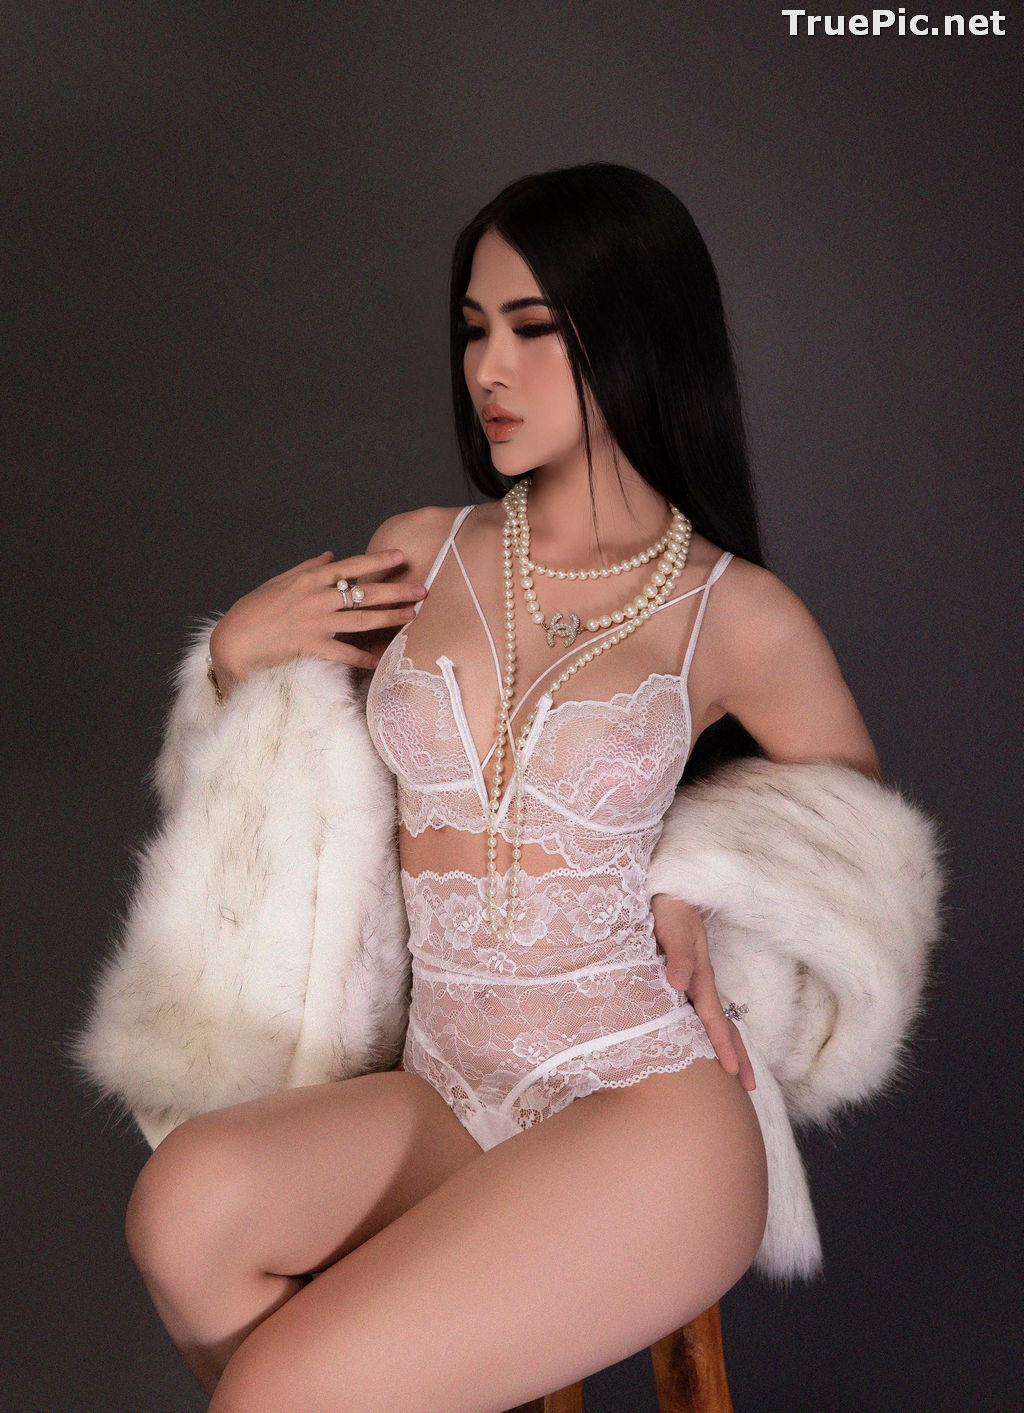 Image Vietnamese Model - Hot Beautiful Girls In White Collection - TruePic.net - Picture-3